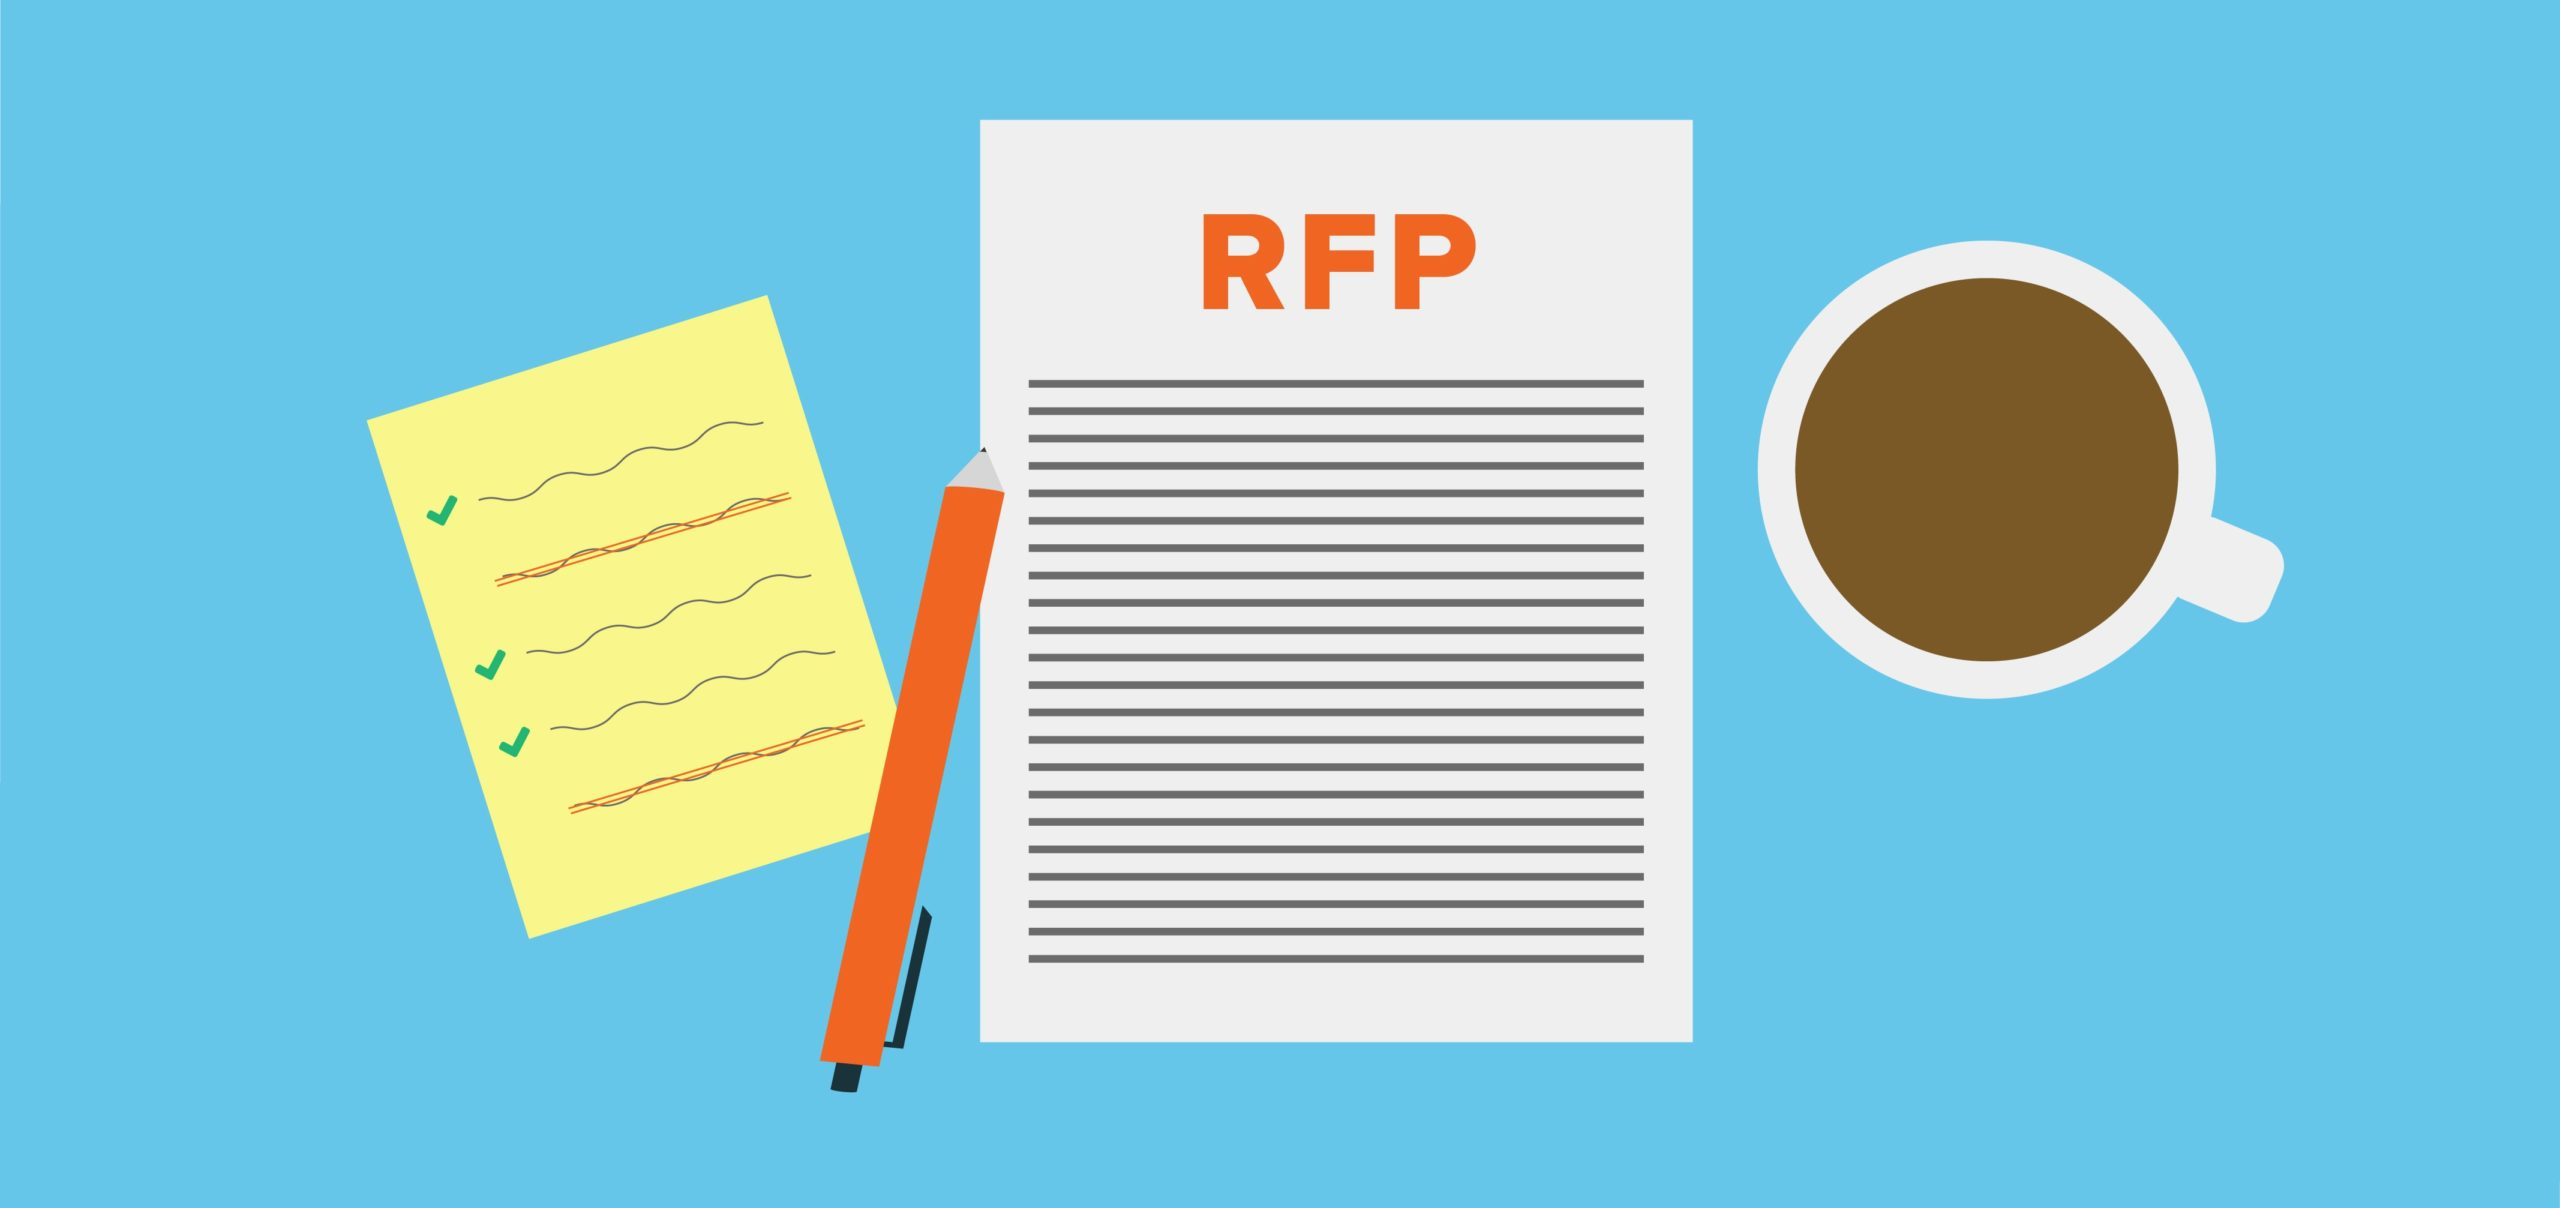 Preparing the Perfect RFP: Tips From A Top PR Agency